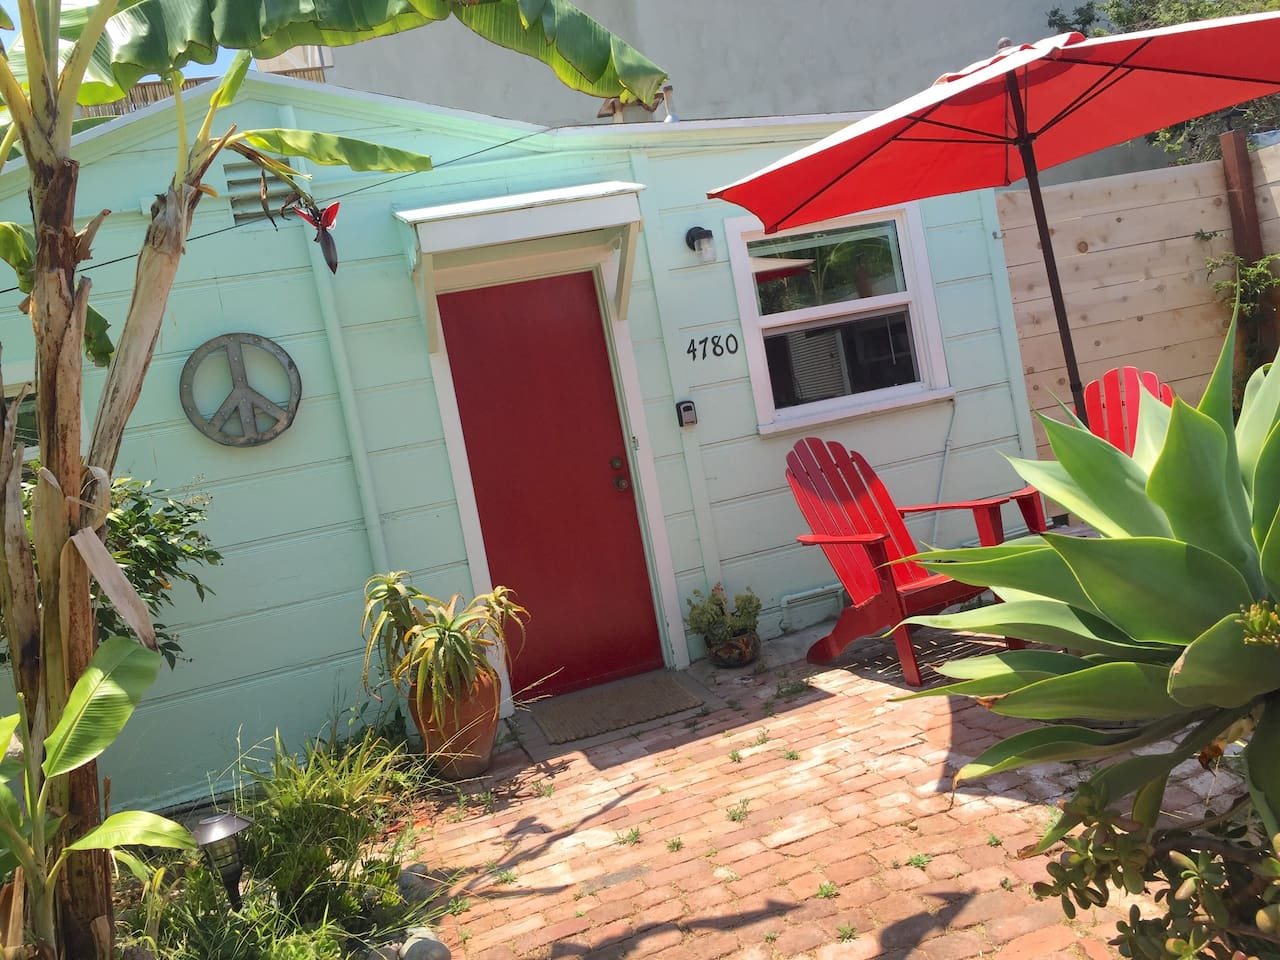 """Soulful beach cottages like this from the 1950s are a rare gem these days. It is a """"tiny house"""" experience from another era that you will love!"""